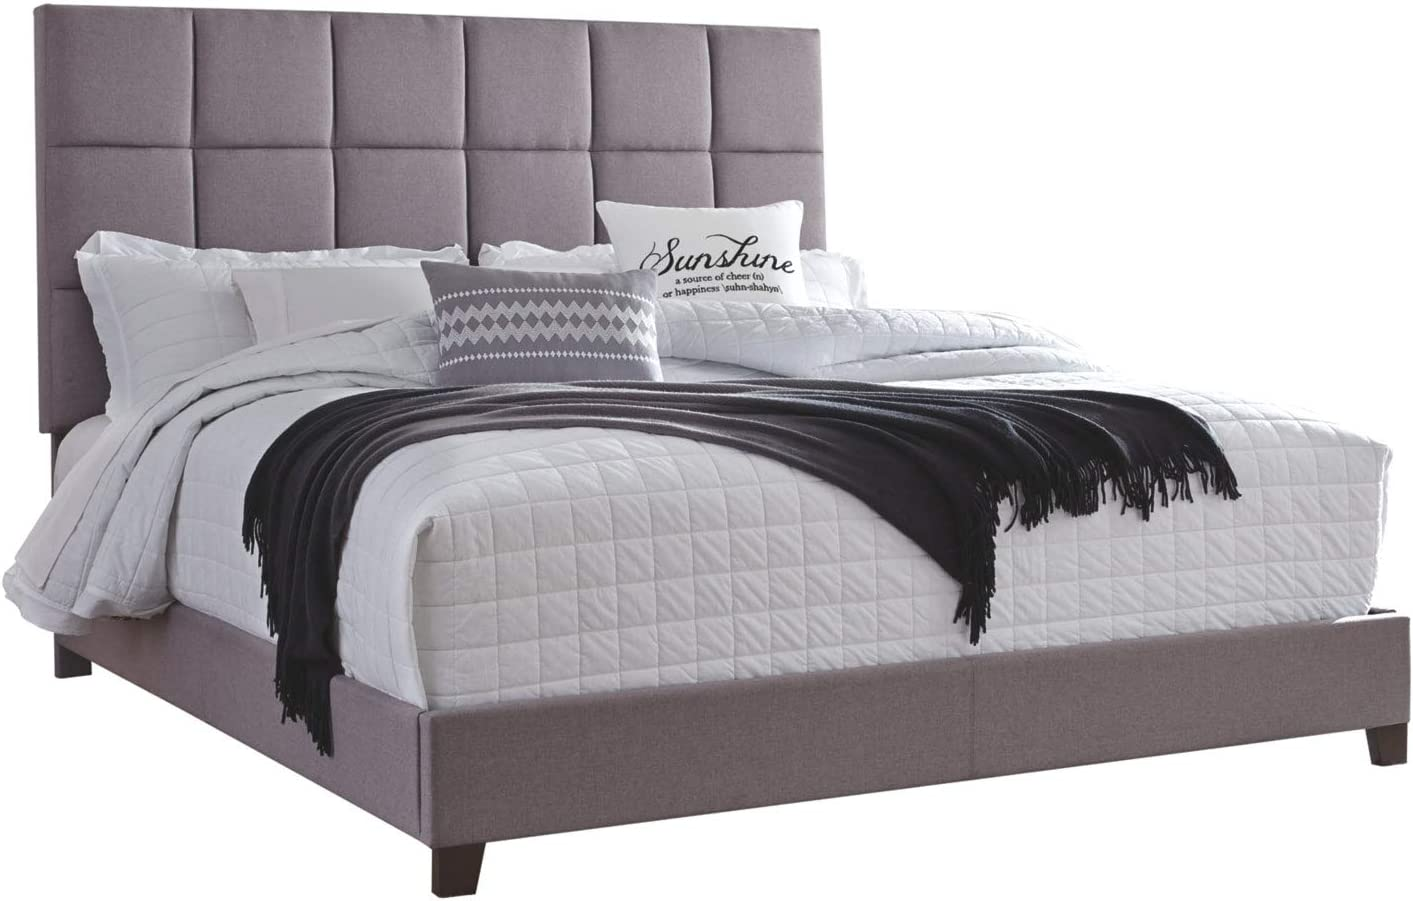 Ashley Furniture Signature Design - Dolante Upholstered Bed - King Size - Complete Bed Set in a Box - Contemporary Style Checker - Gray